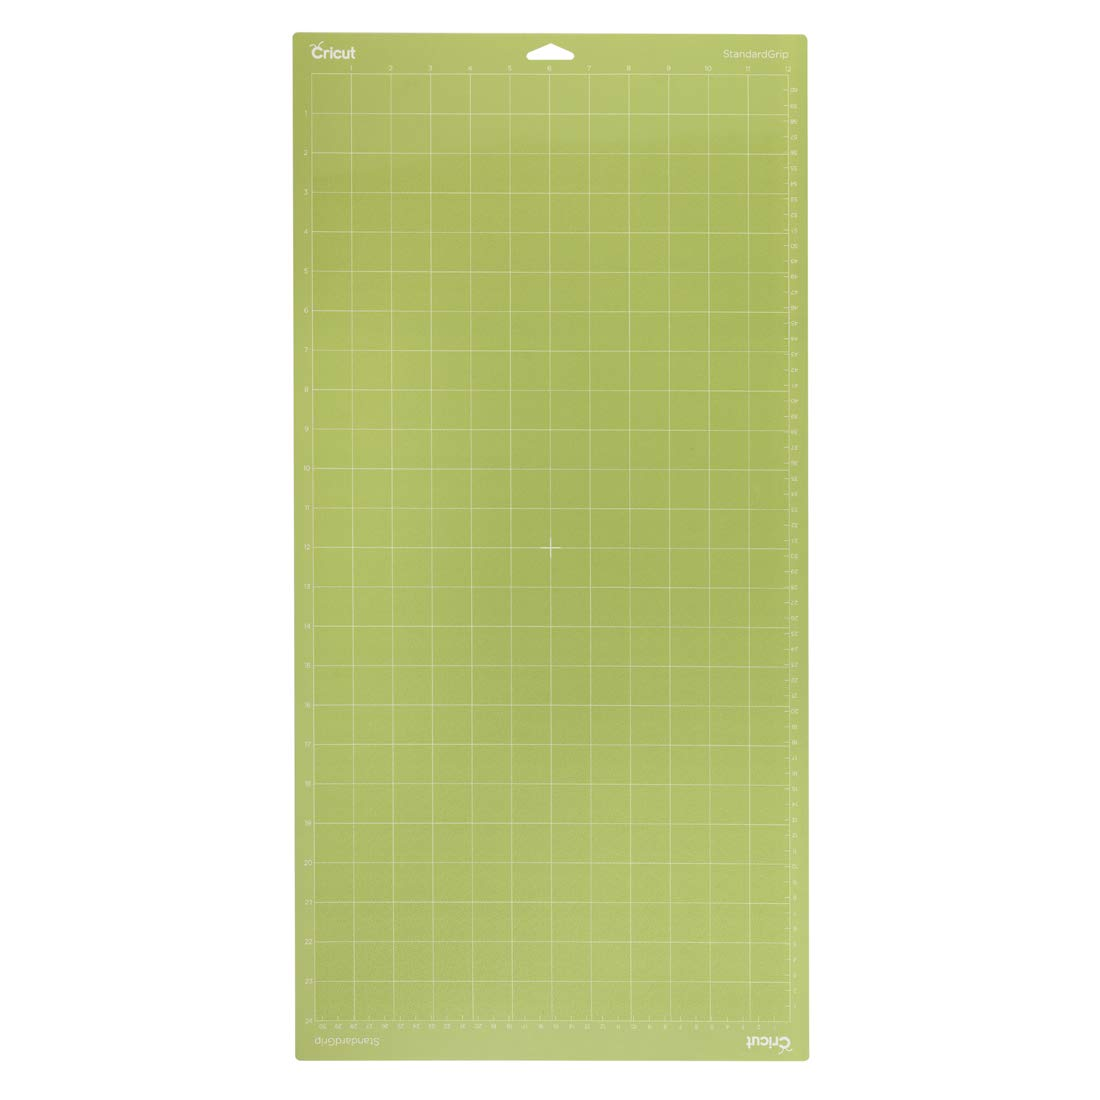 Cricut 12-by-24-Inch Adhesive Cutting Mat